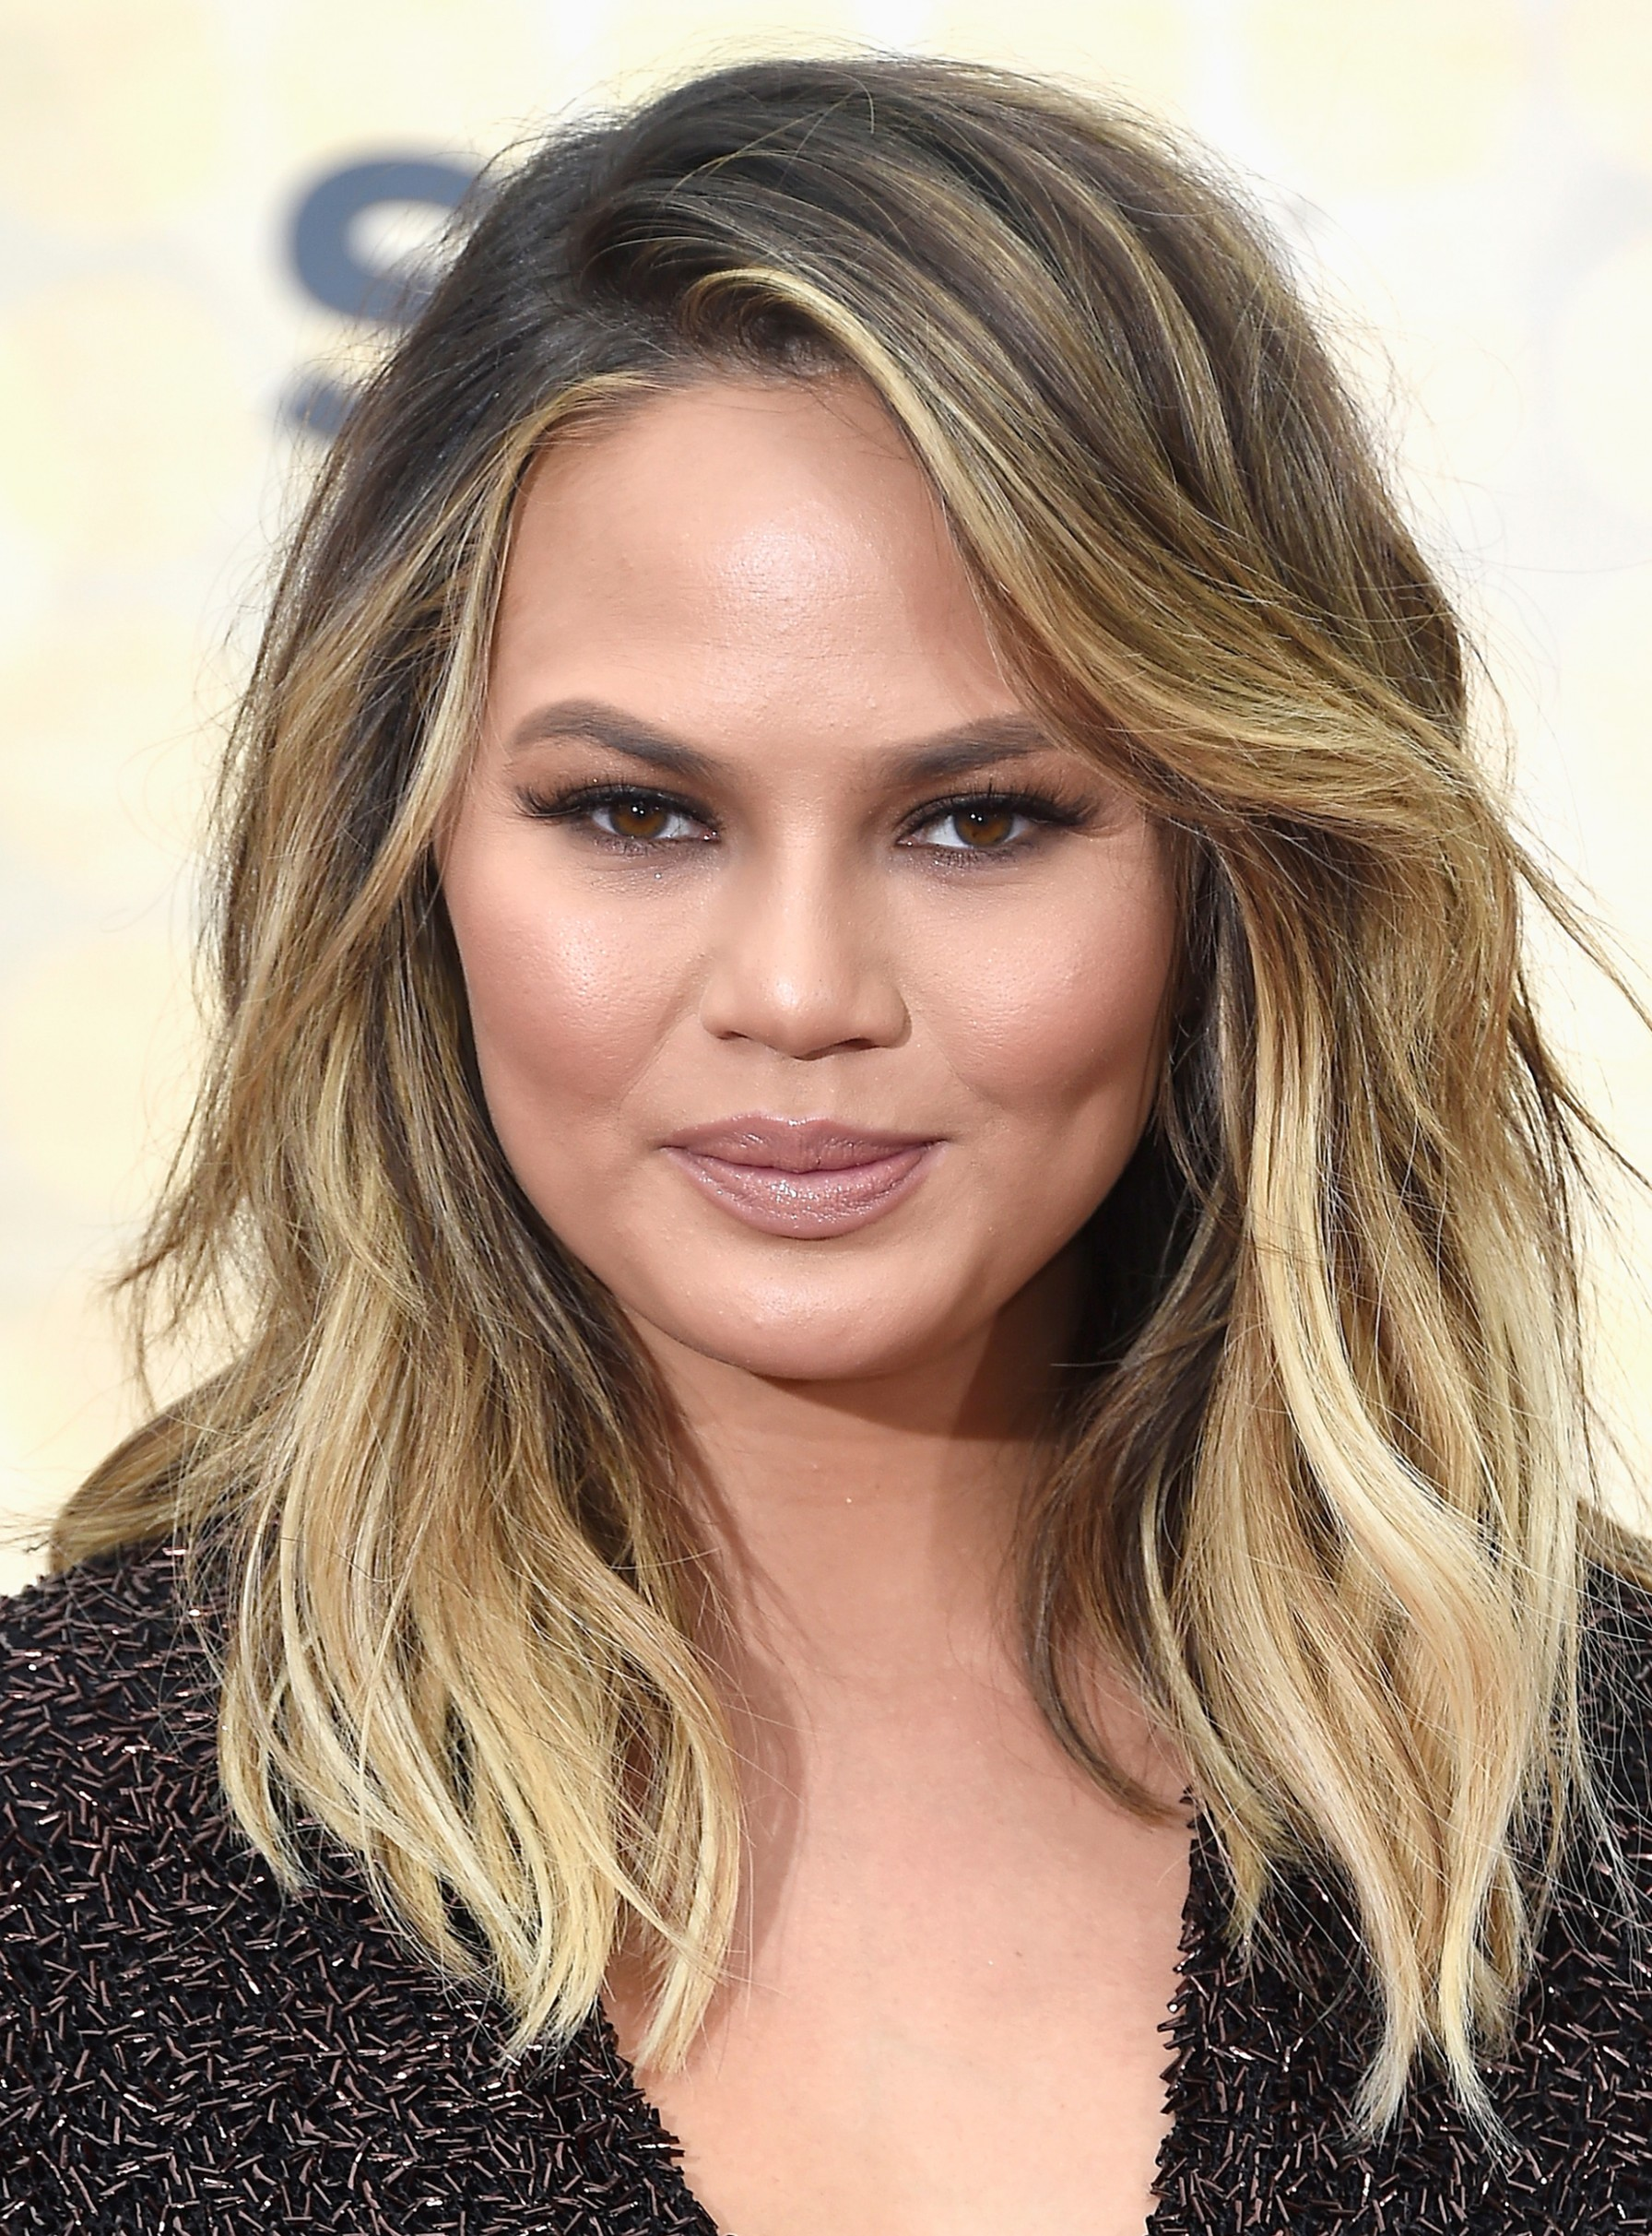 10 Best Hairstyles For Round Faces Flattering Hairstyles For Round Faces